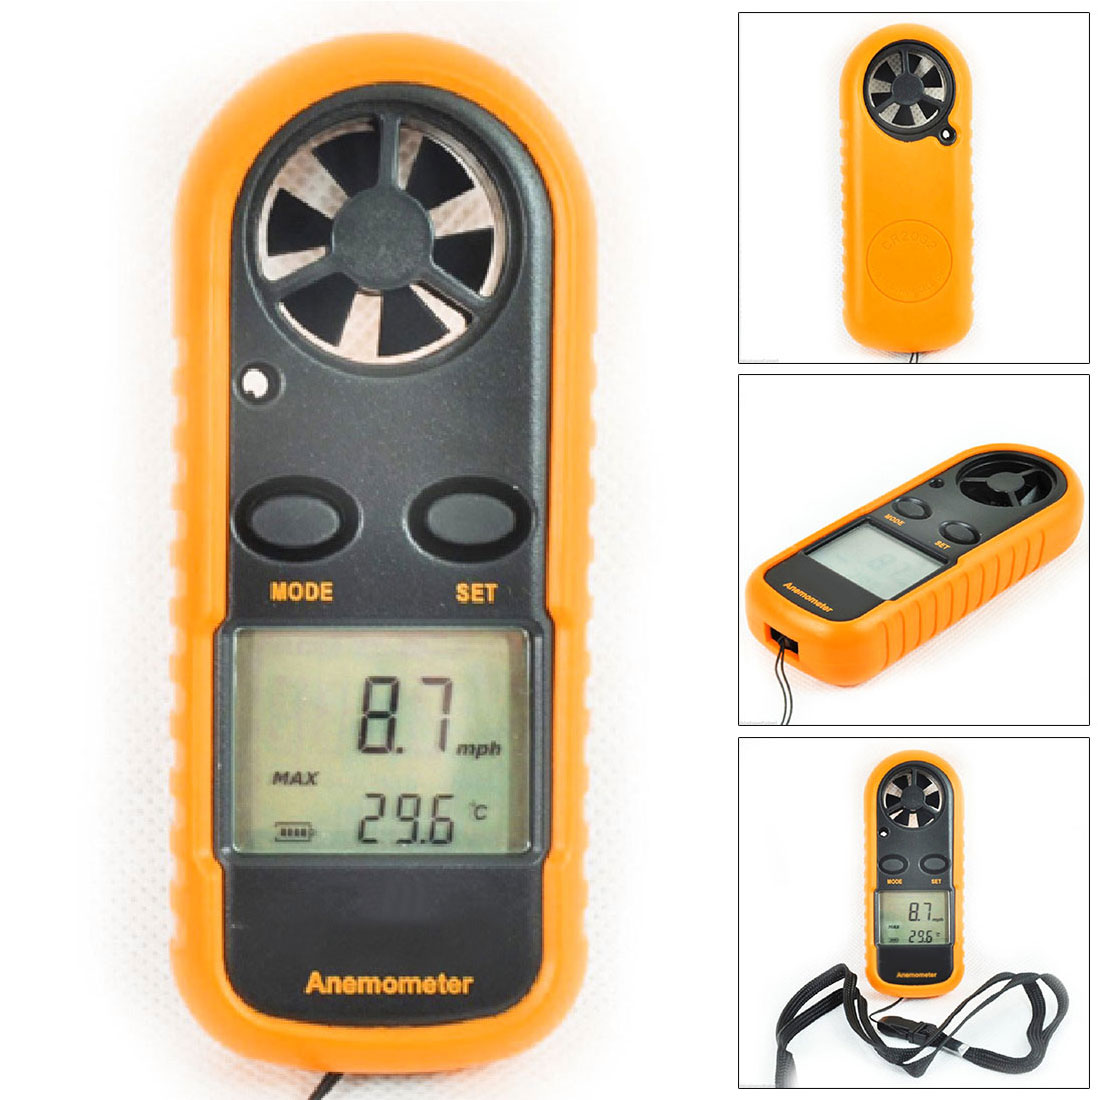 1pcs Portable Anemometer Thermometer 30m/s Wind Speed Gauge Meter Windmeter LCD Digital Hand-held Measure Tool